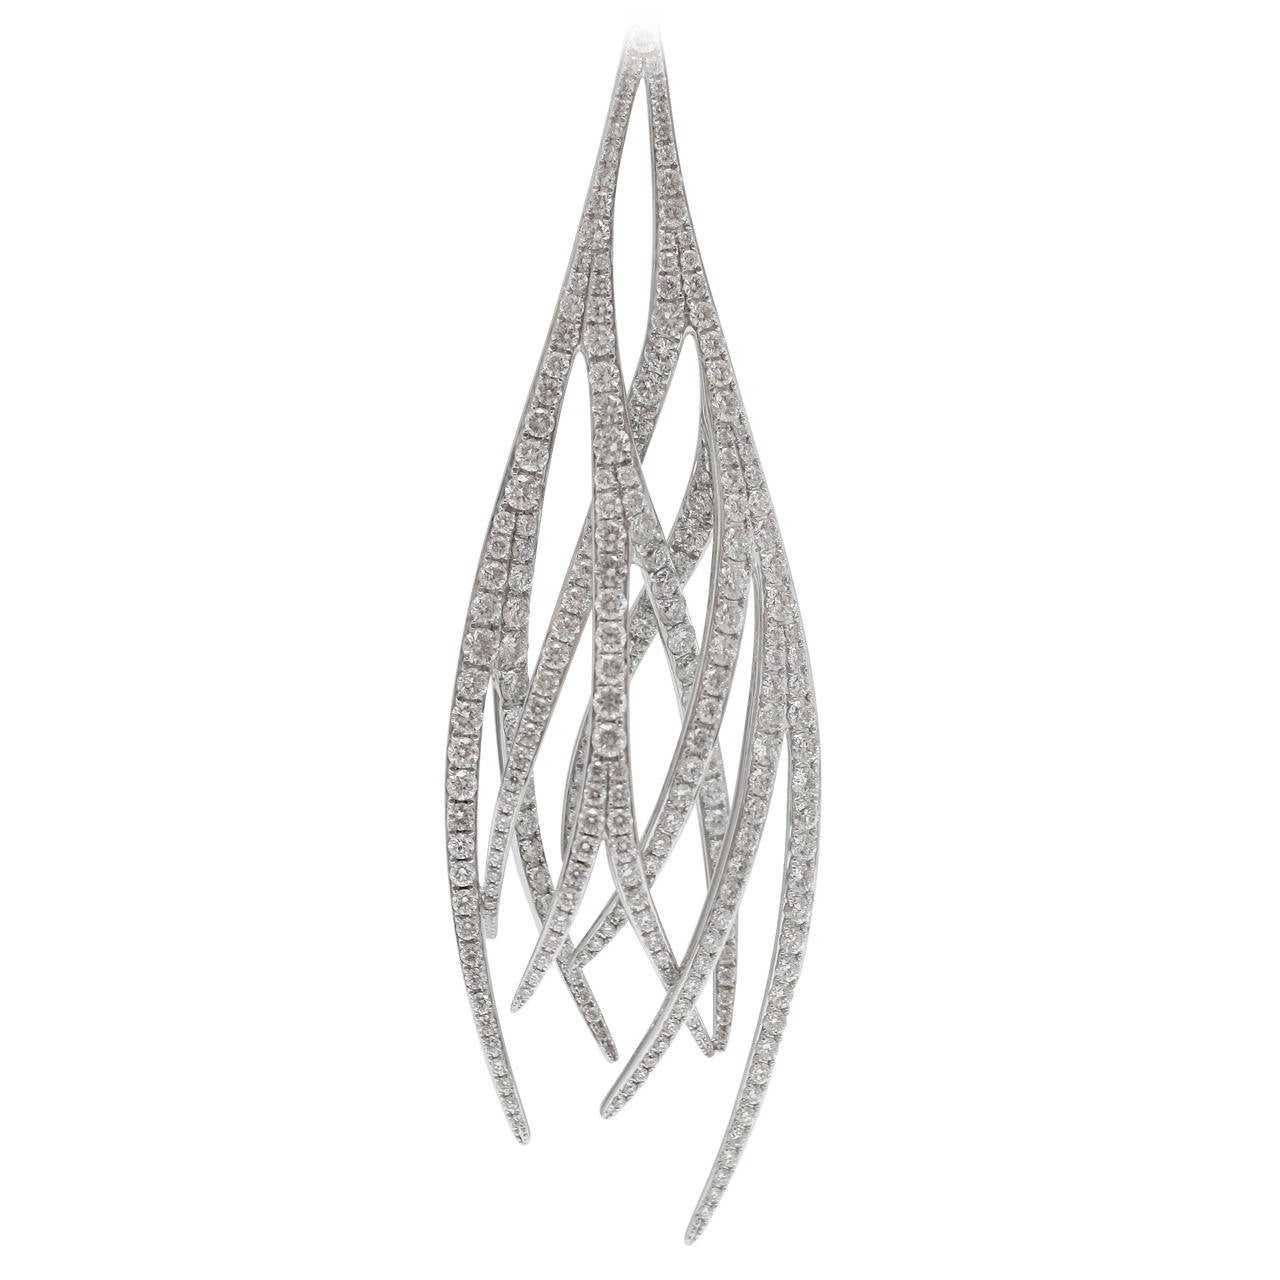 Red Carpet Chandelier: Burdeen's Red Carpet Diamond Gold Entwined Feather